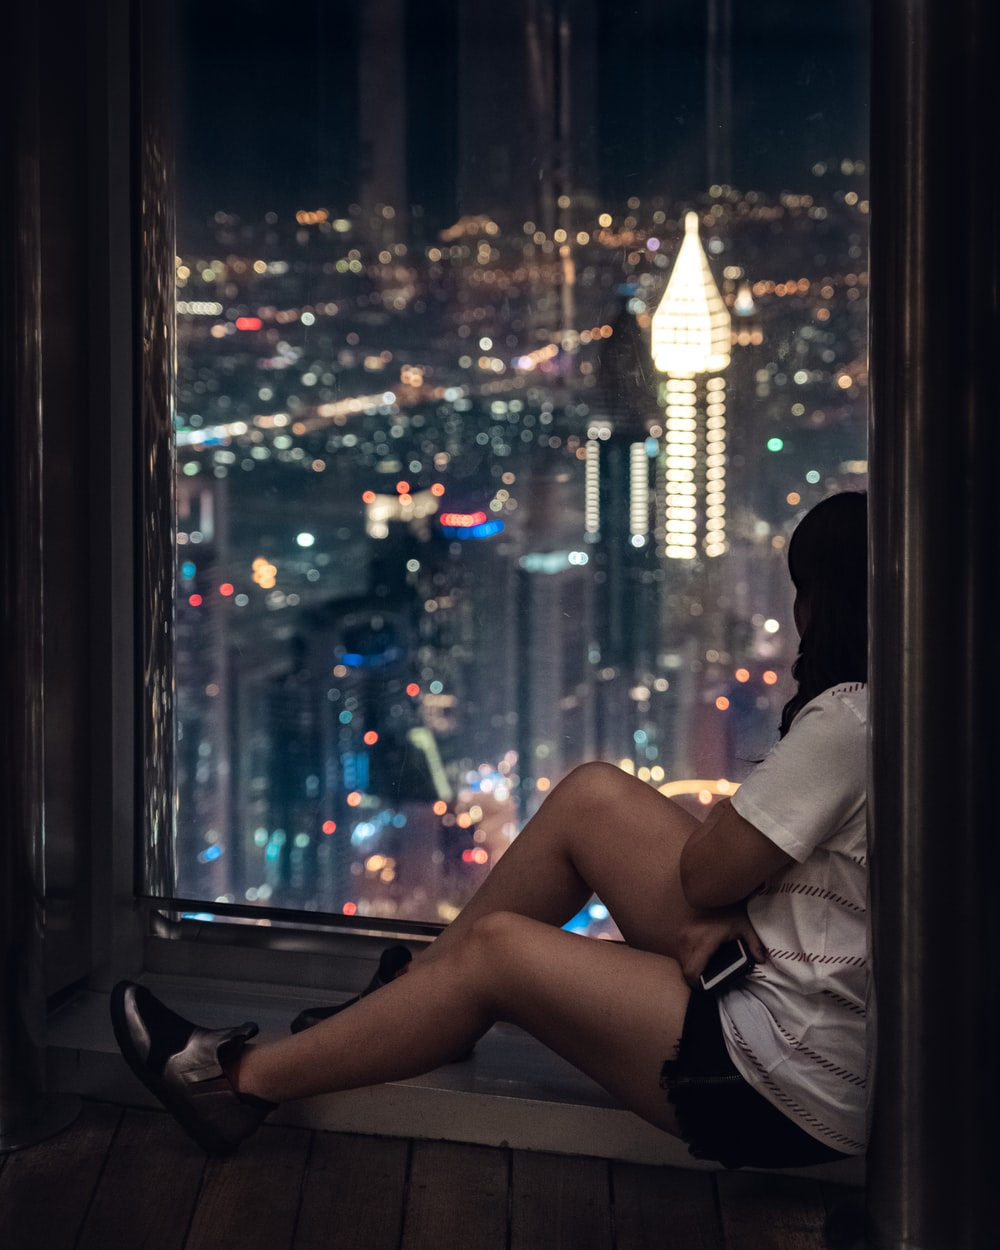 woman sitting beside window during nighttime